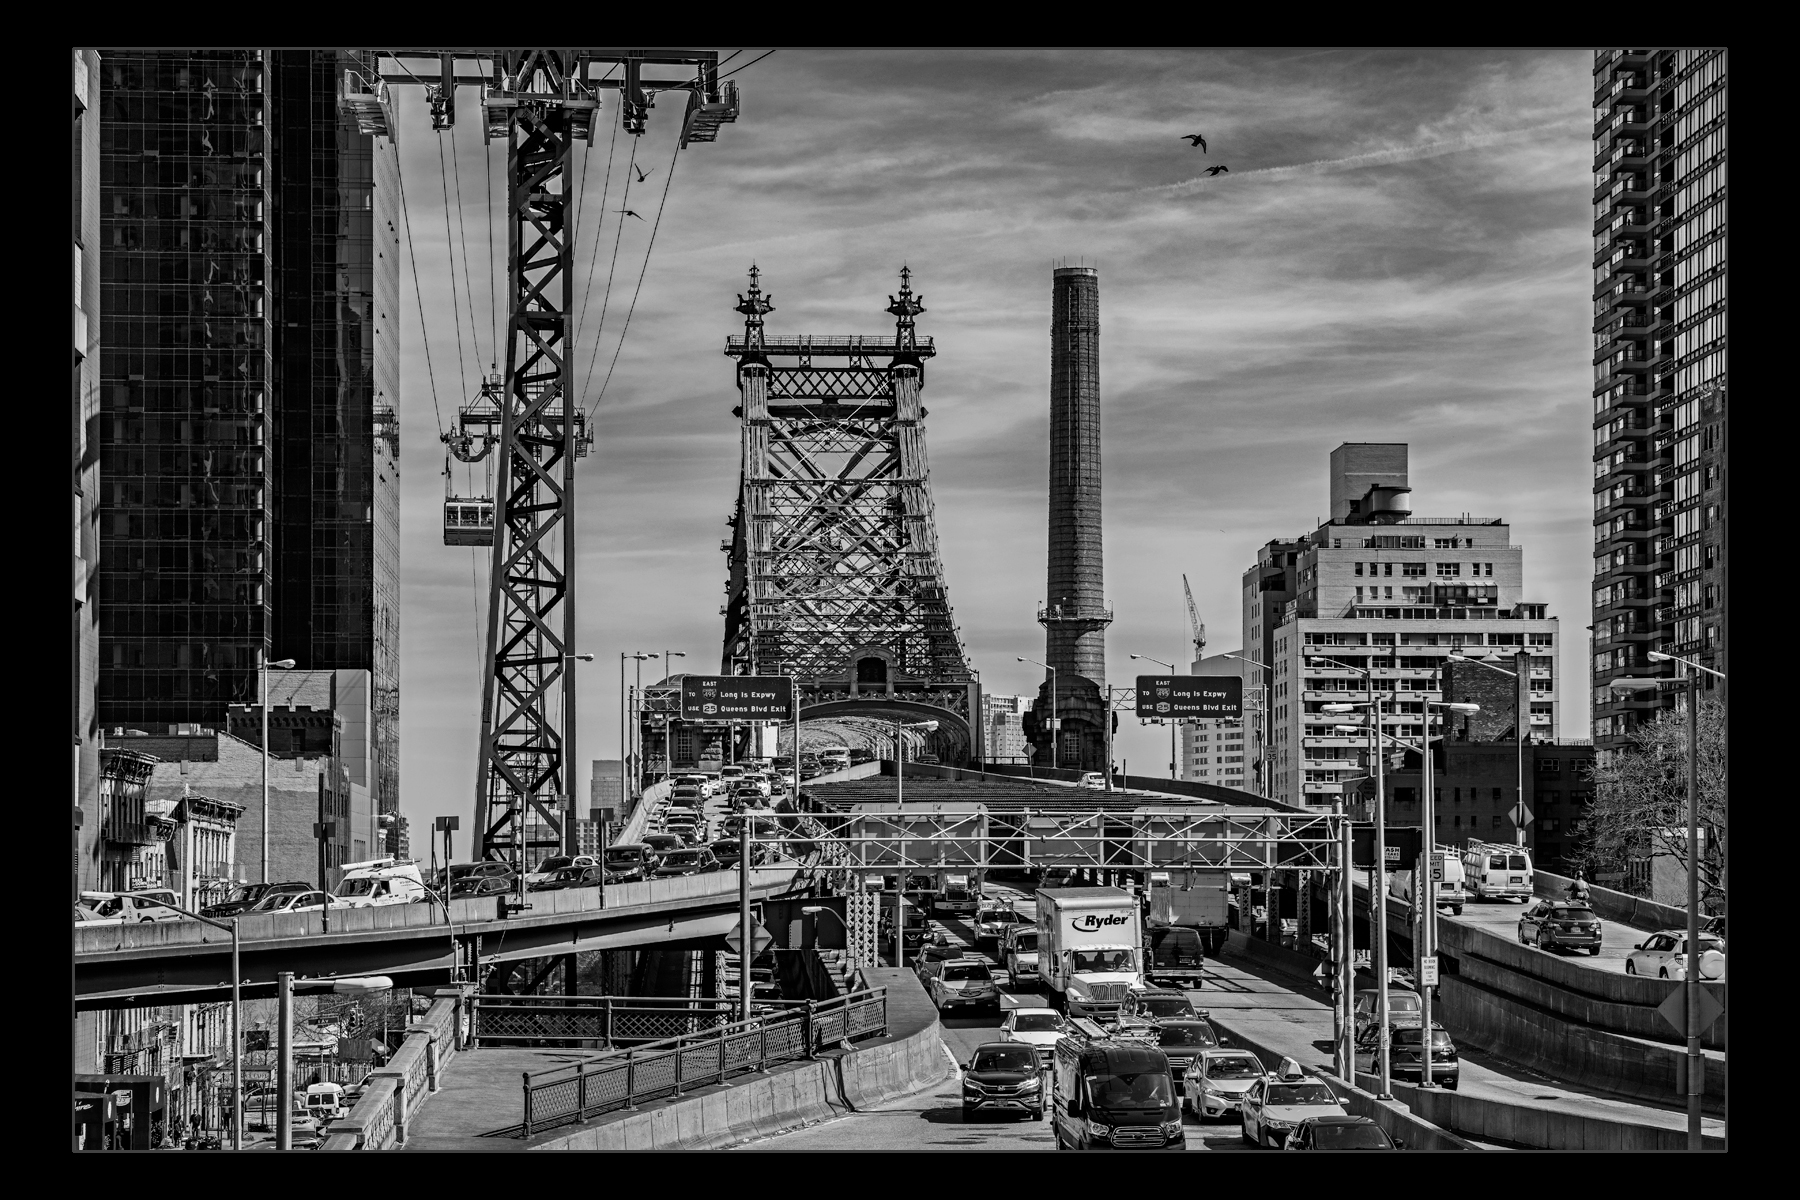 Queensboro Bridge and tram.